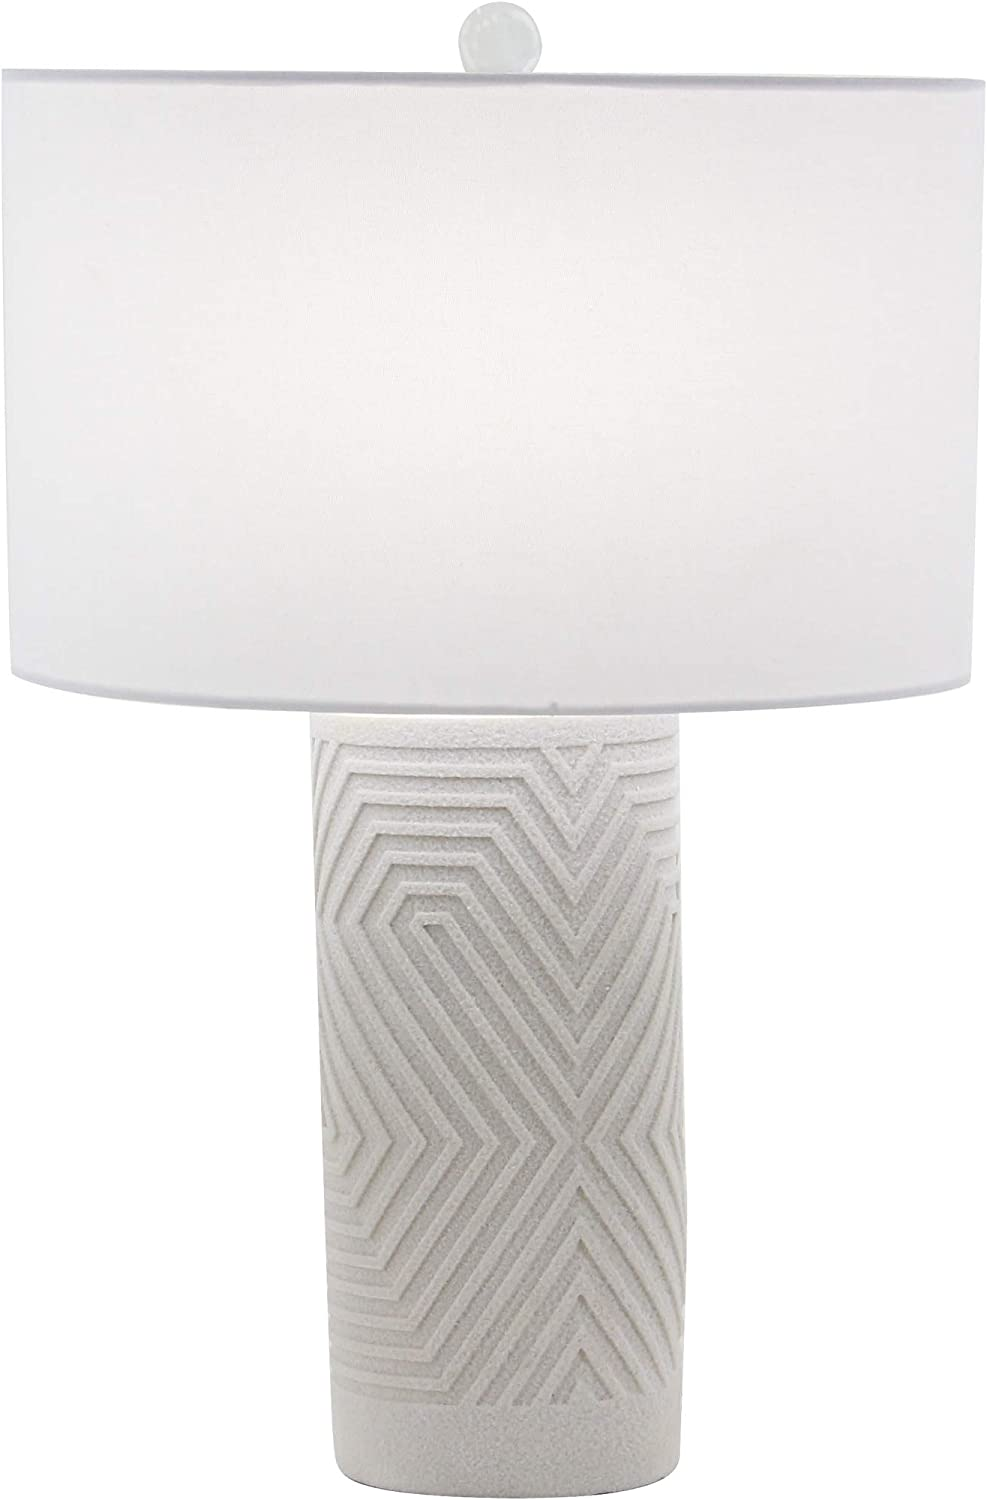 Deco 79 Table Lamps, Large, Cream White